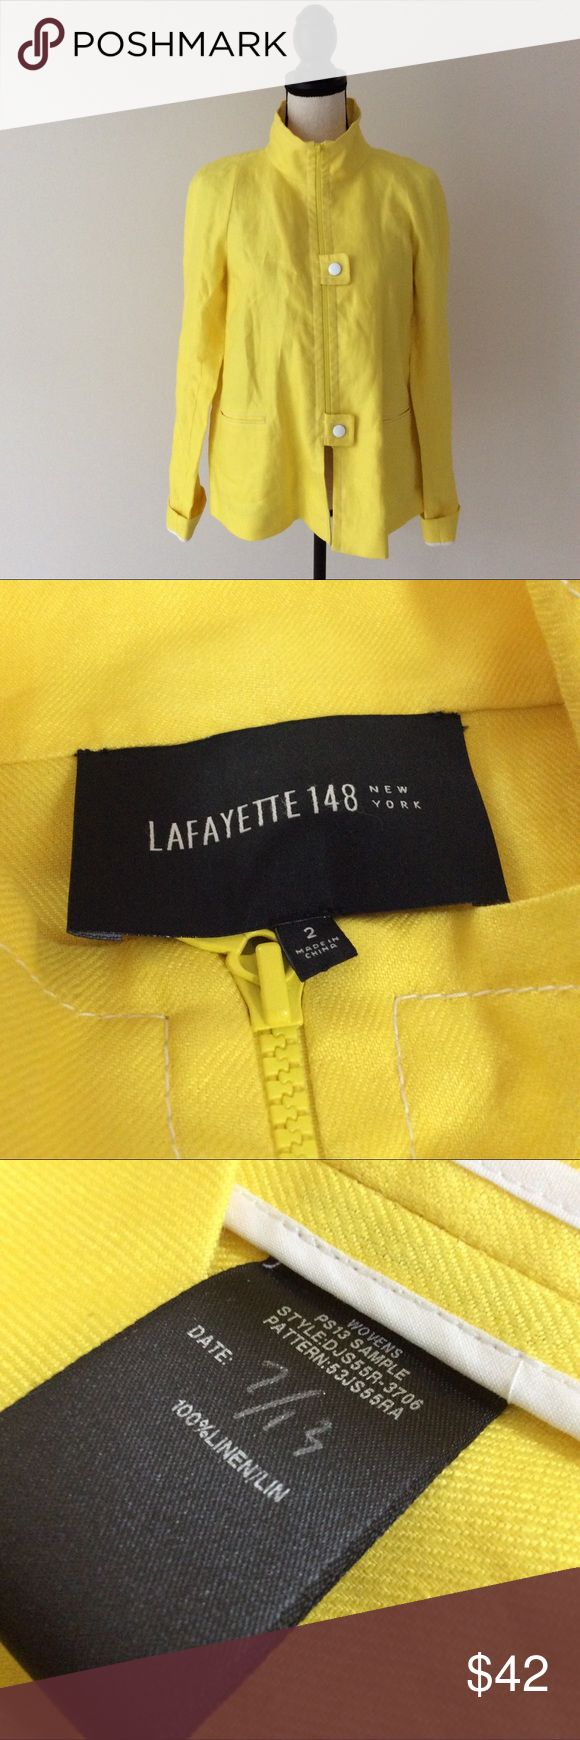 Lafayette 148 Women's Yellow Linen Zip Up Jacket # In excellent preowned condition.Small wear signs mentioned in the last picture. Lafayette 148 New York Jackets & Coats